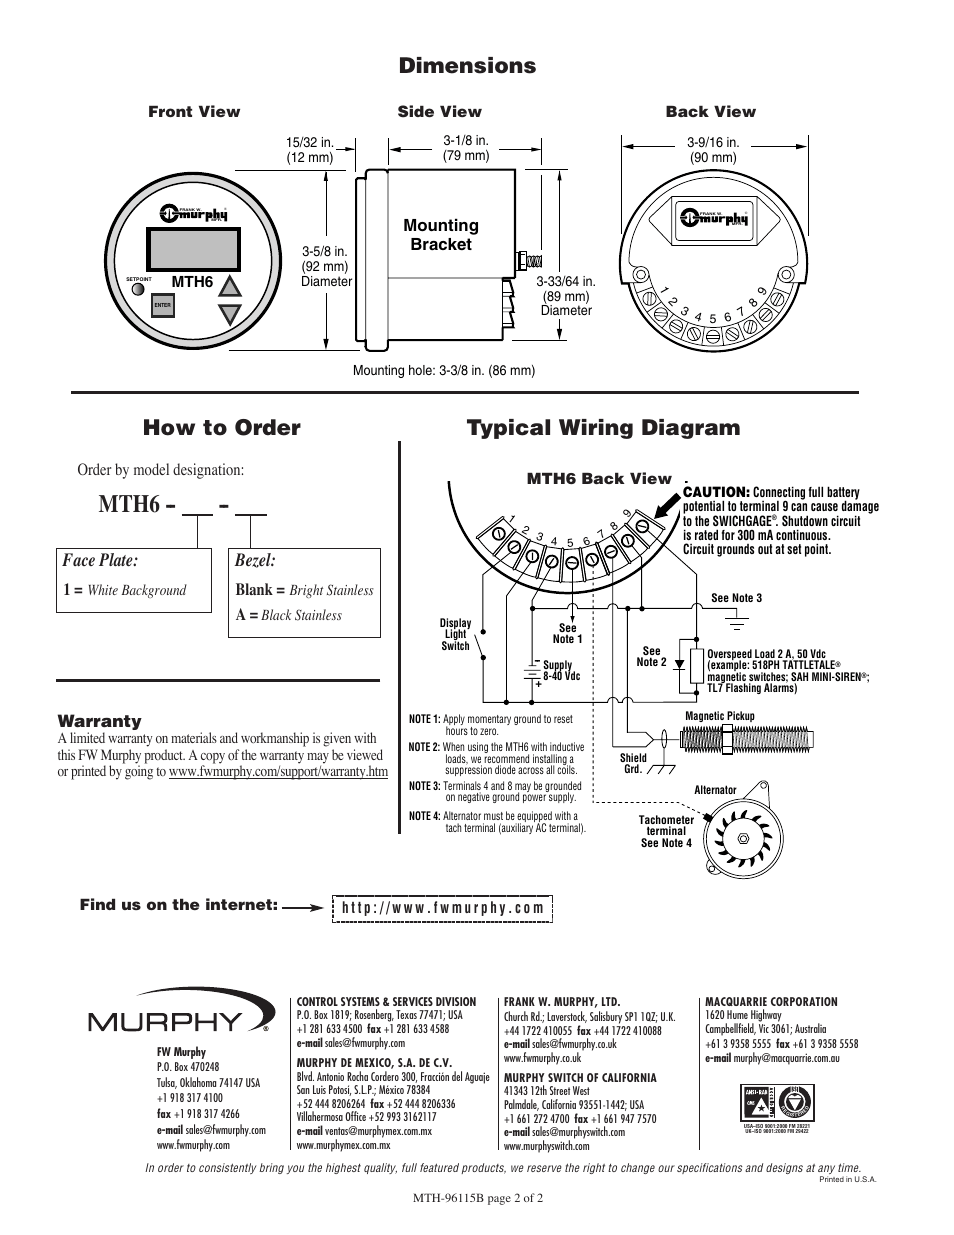 medium resolution of mth6 typical wiring diagram how to order dimensions murphy mth6 murphy switch wiring diagrams